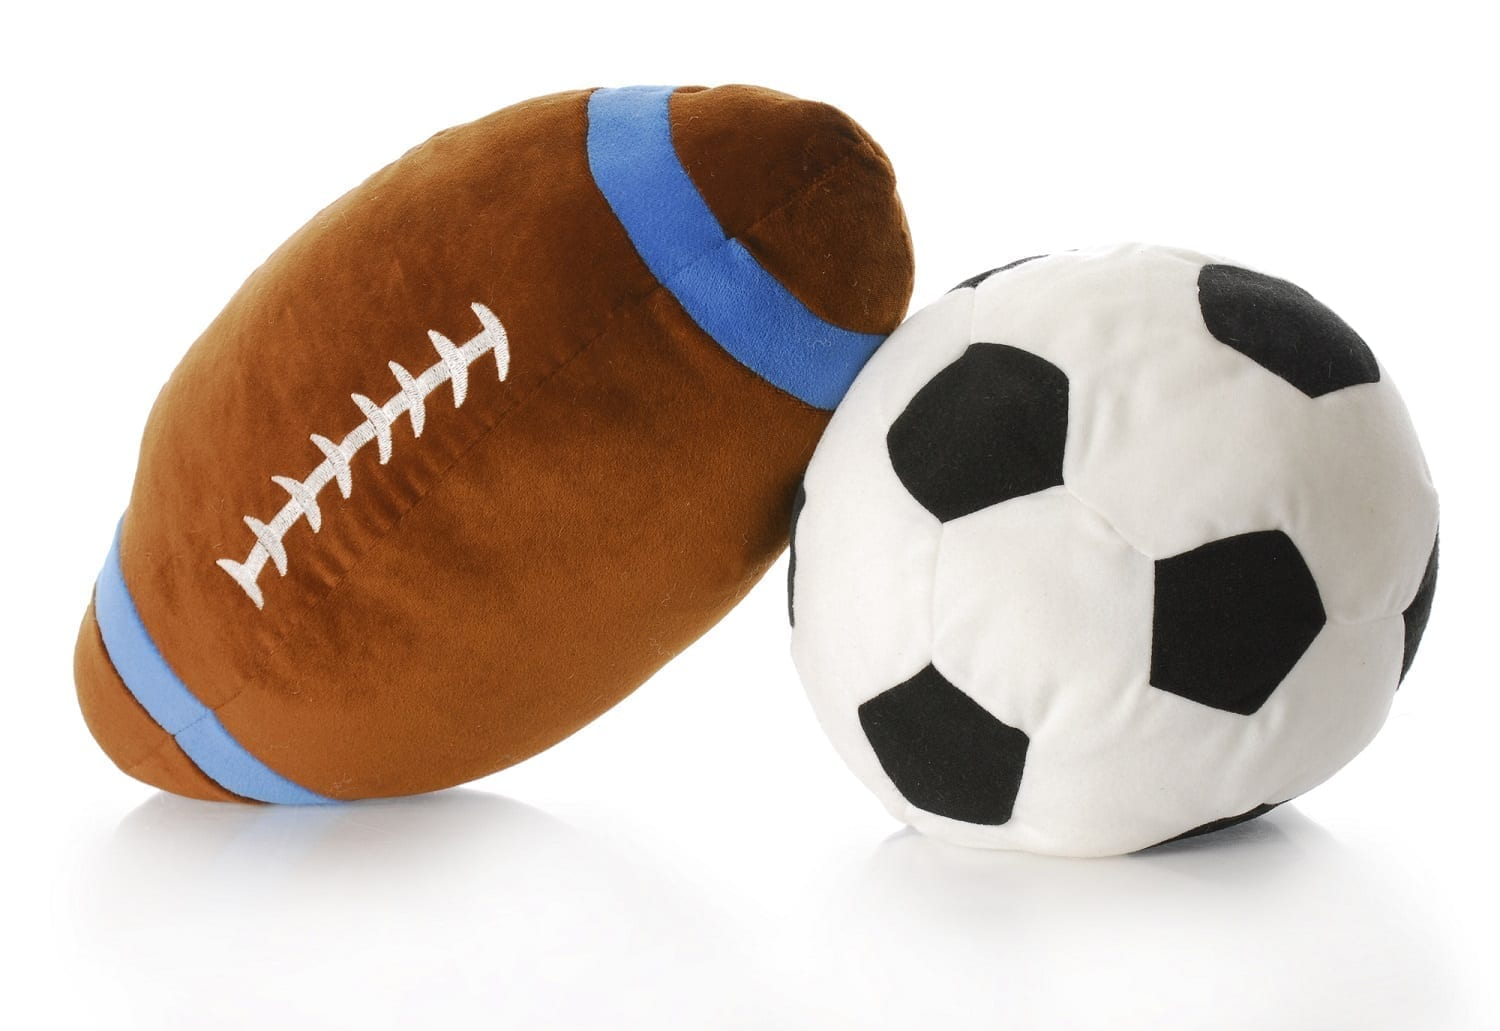 Why does America call Fußball (Football) Soccer?